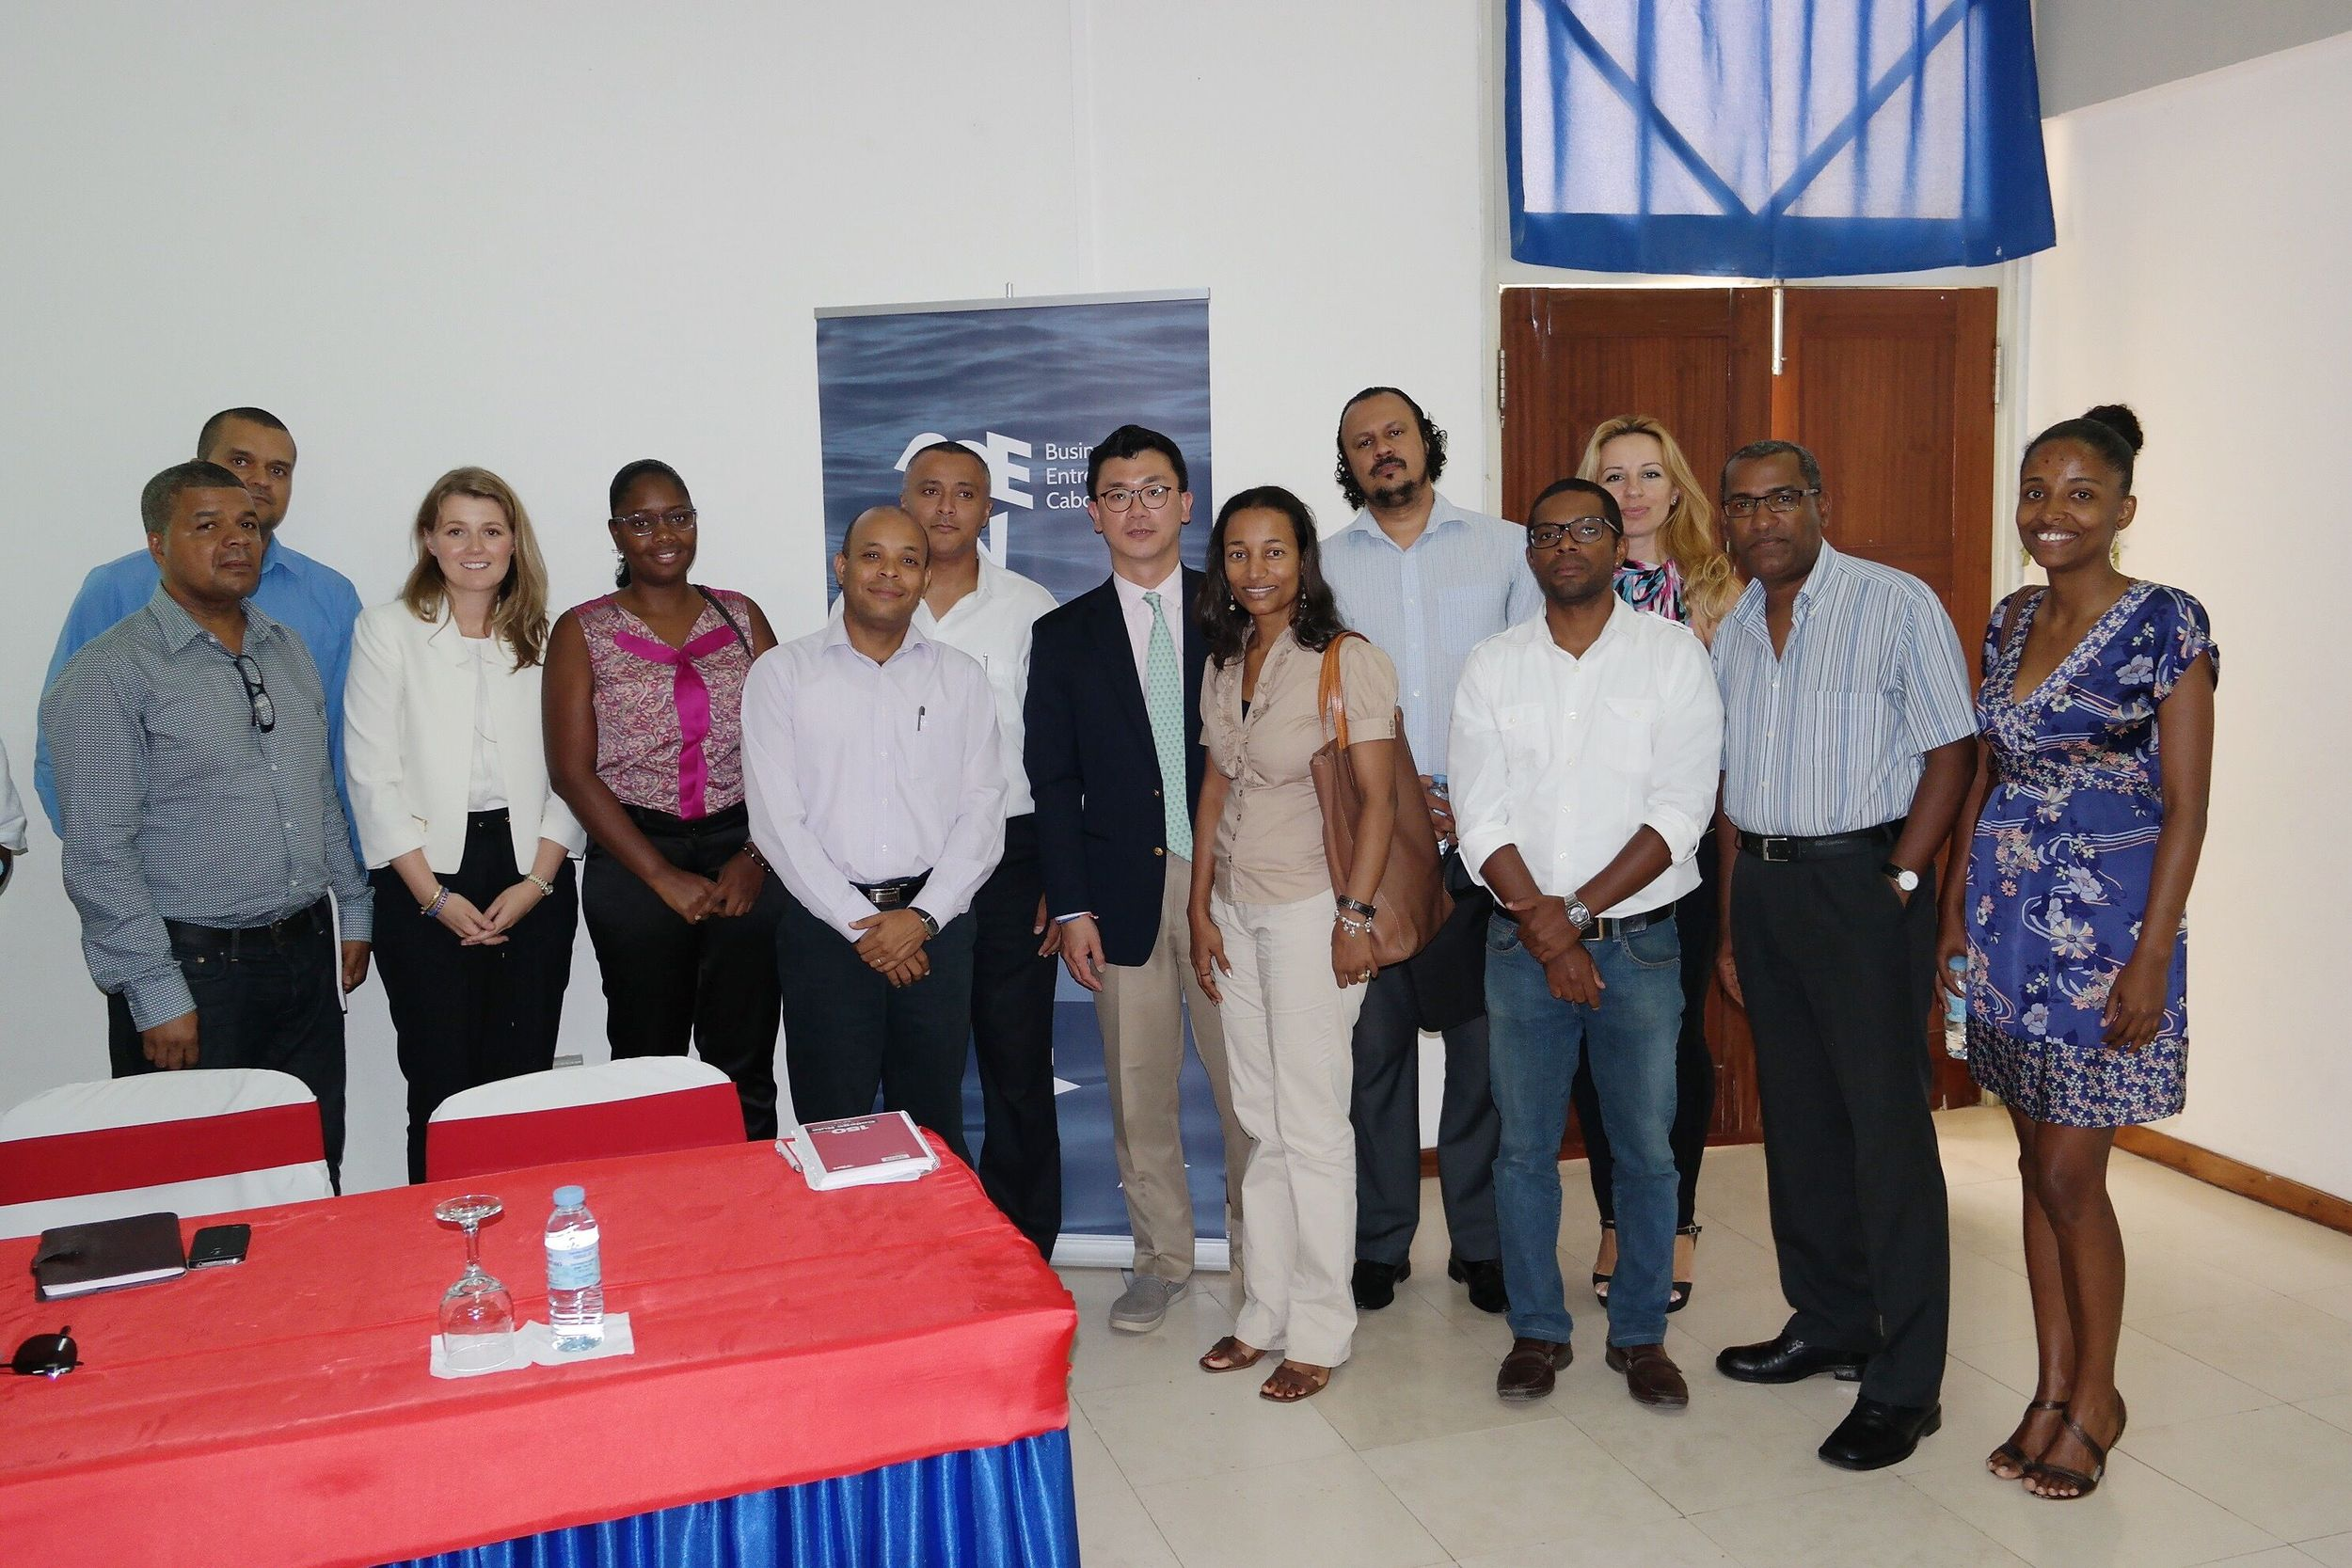 Here I am with West African small business owners. This picture was taken in Cabo Verde, a small archipelago off of West Africa, during a conference for entrepreneurs.